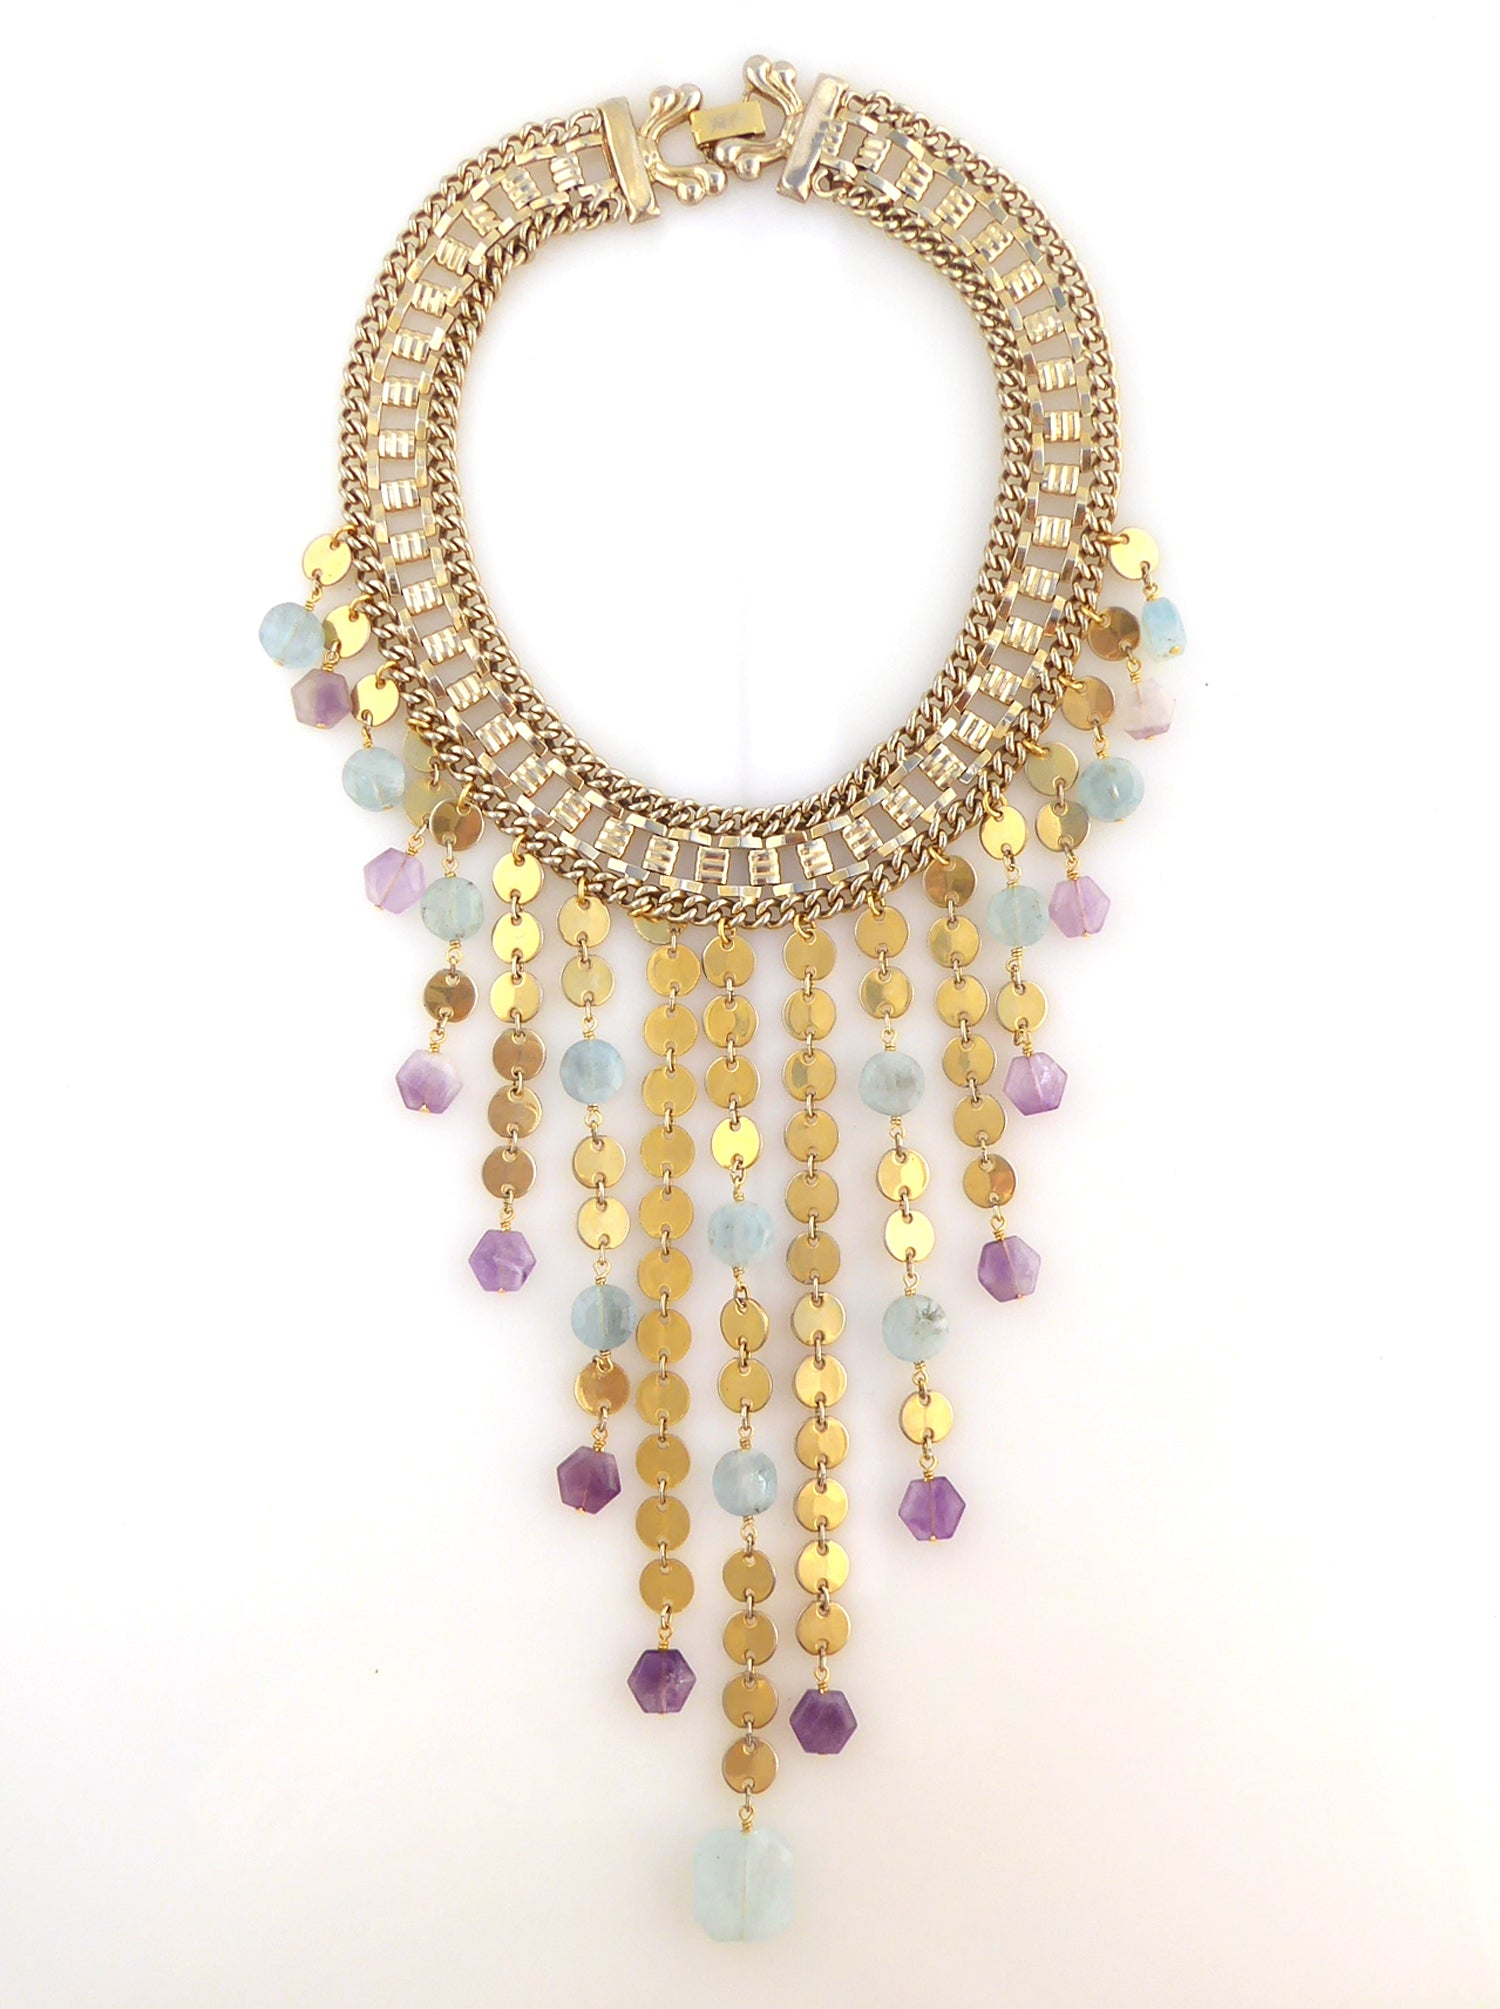 Carmeline aquamarine and amethyst necklace by Jenny Dayco 7